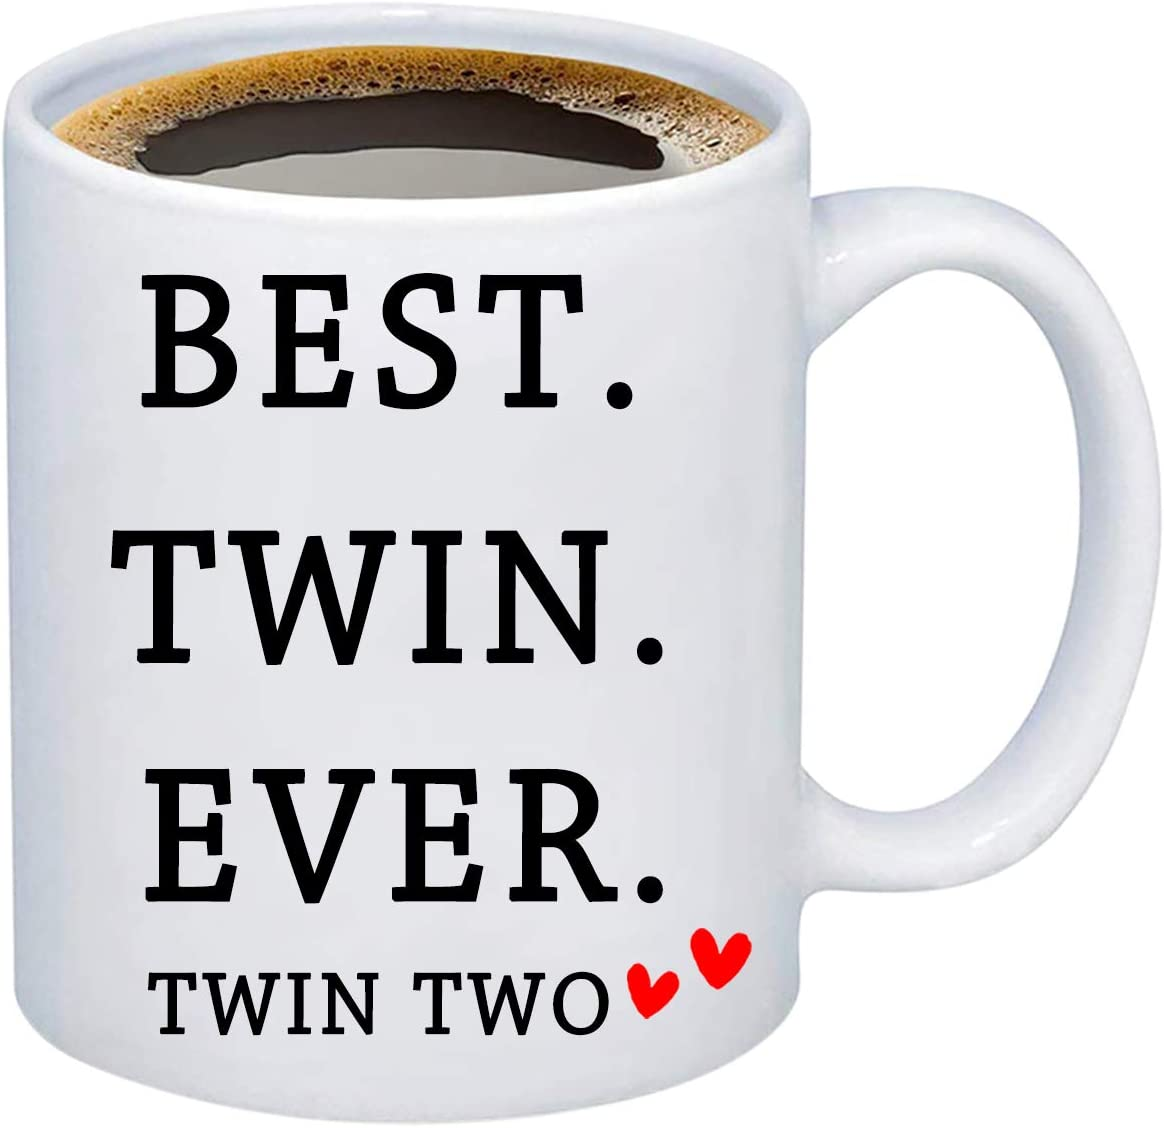 MBMSO Best Twin Ever Mug Twin One Twin Two Twins Gifts for Twin Sister Twin Brother (Twin Two Mug)